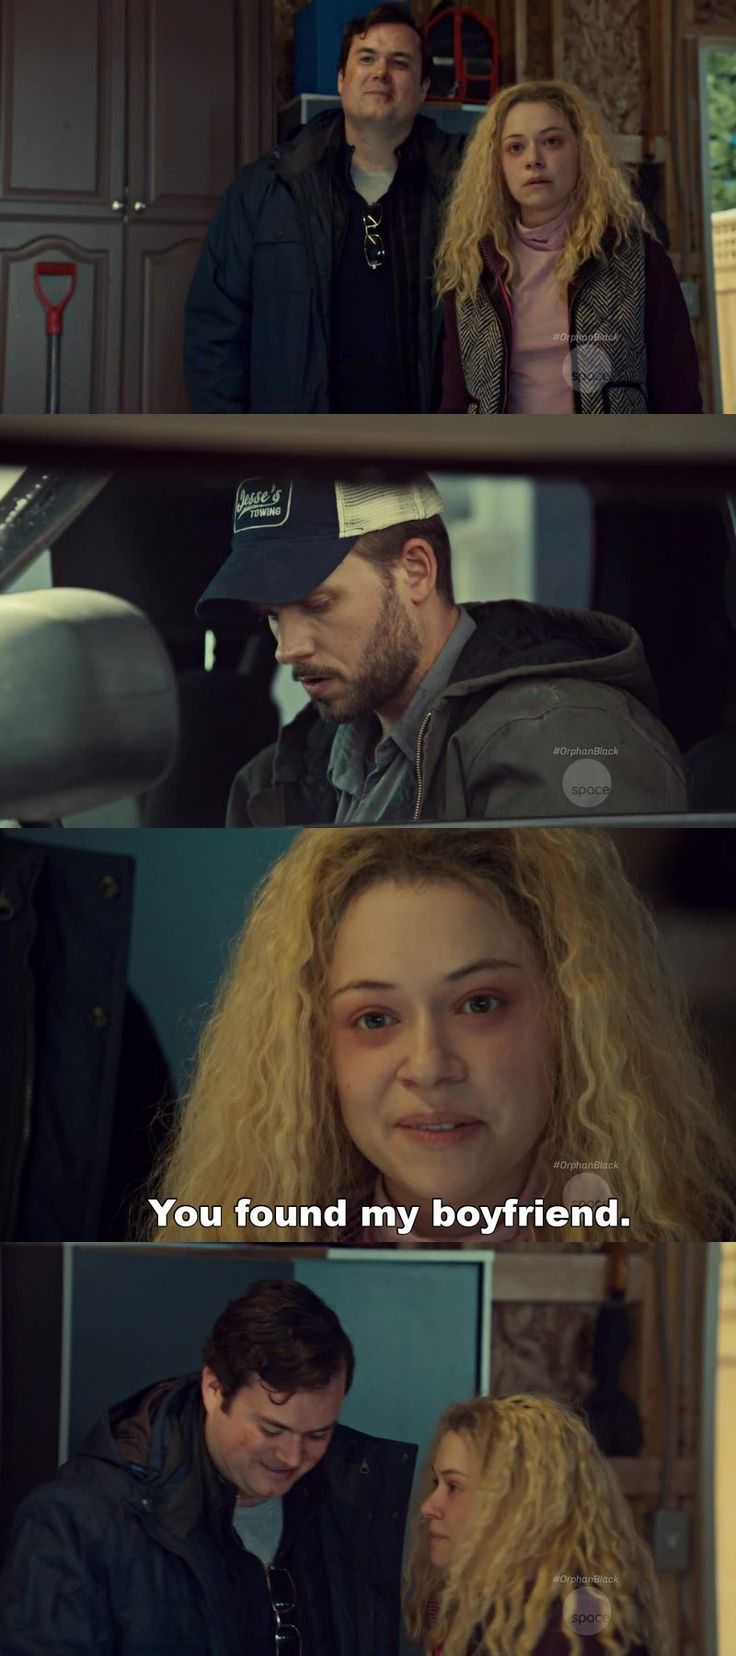 I am dying for this new friendship! They are genuinely the sweetest characters on the show and seeing Helena happy feels just right.